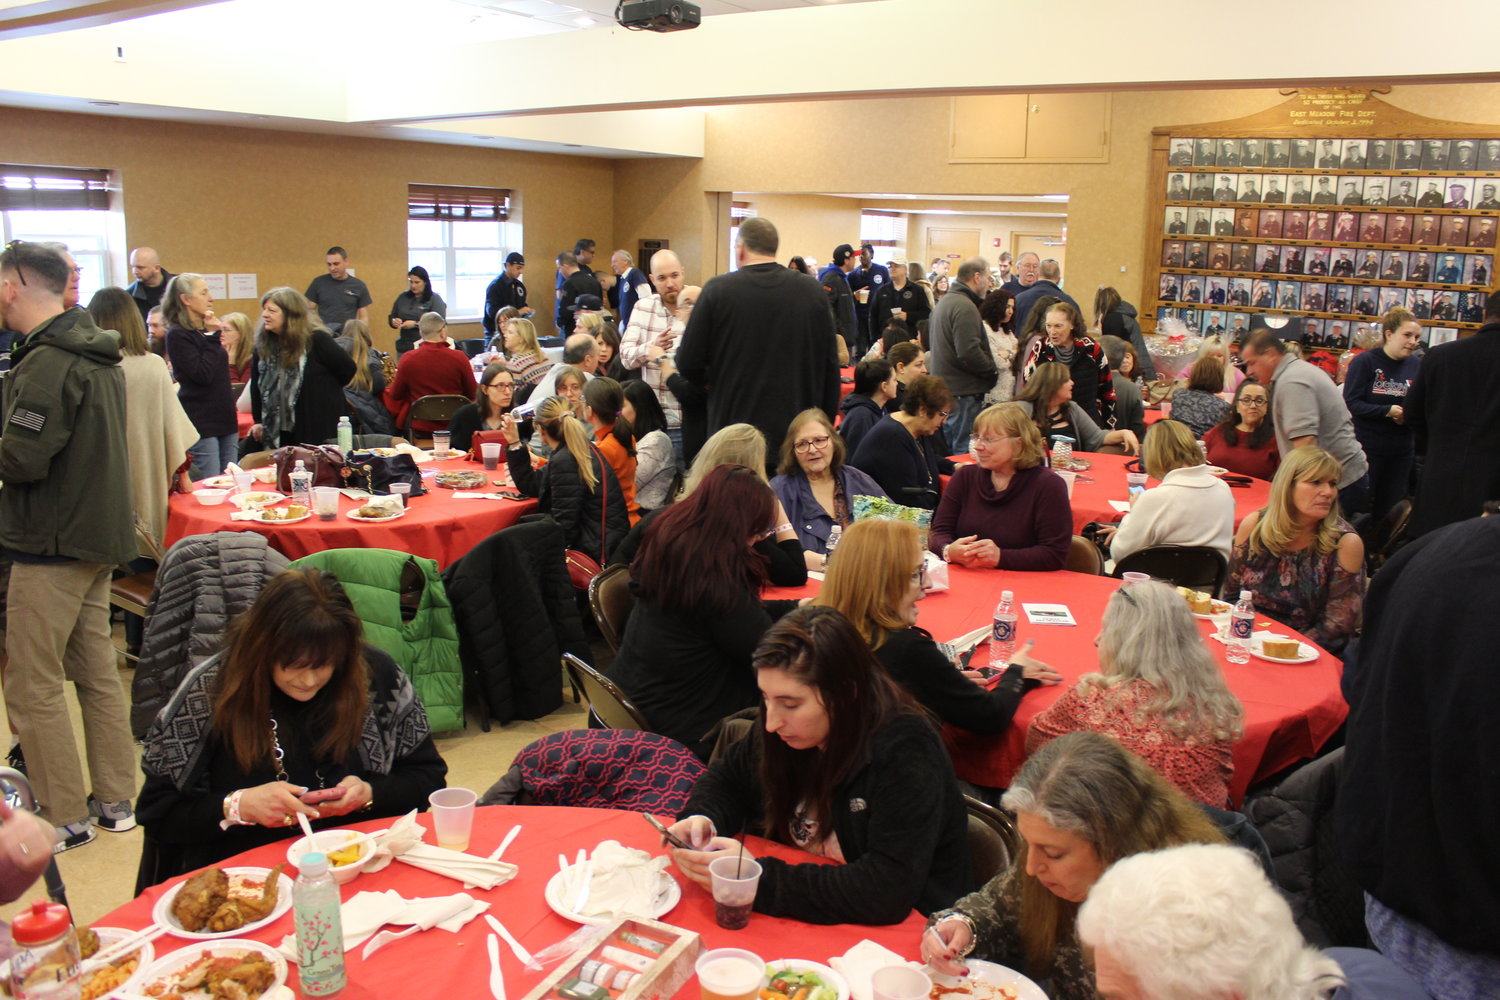 The East Meadow Fire Department Headquarters was packed on Feb. 9 during a fundraiser in support of the family of ex-captain Michael Smith.